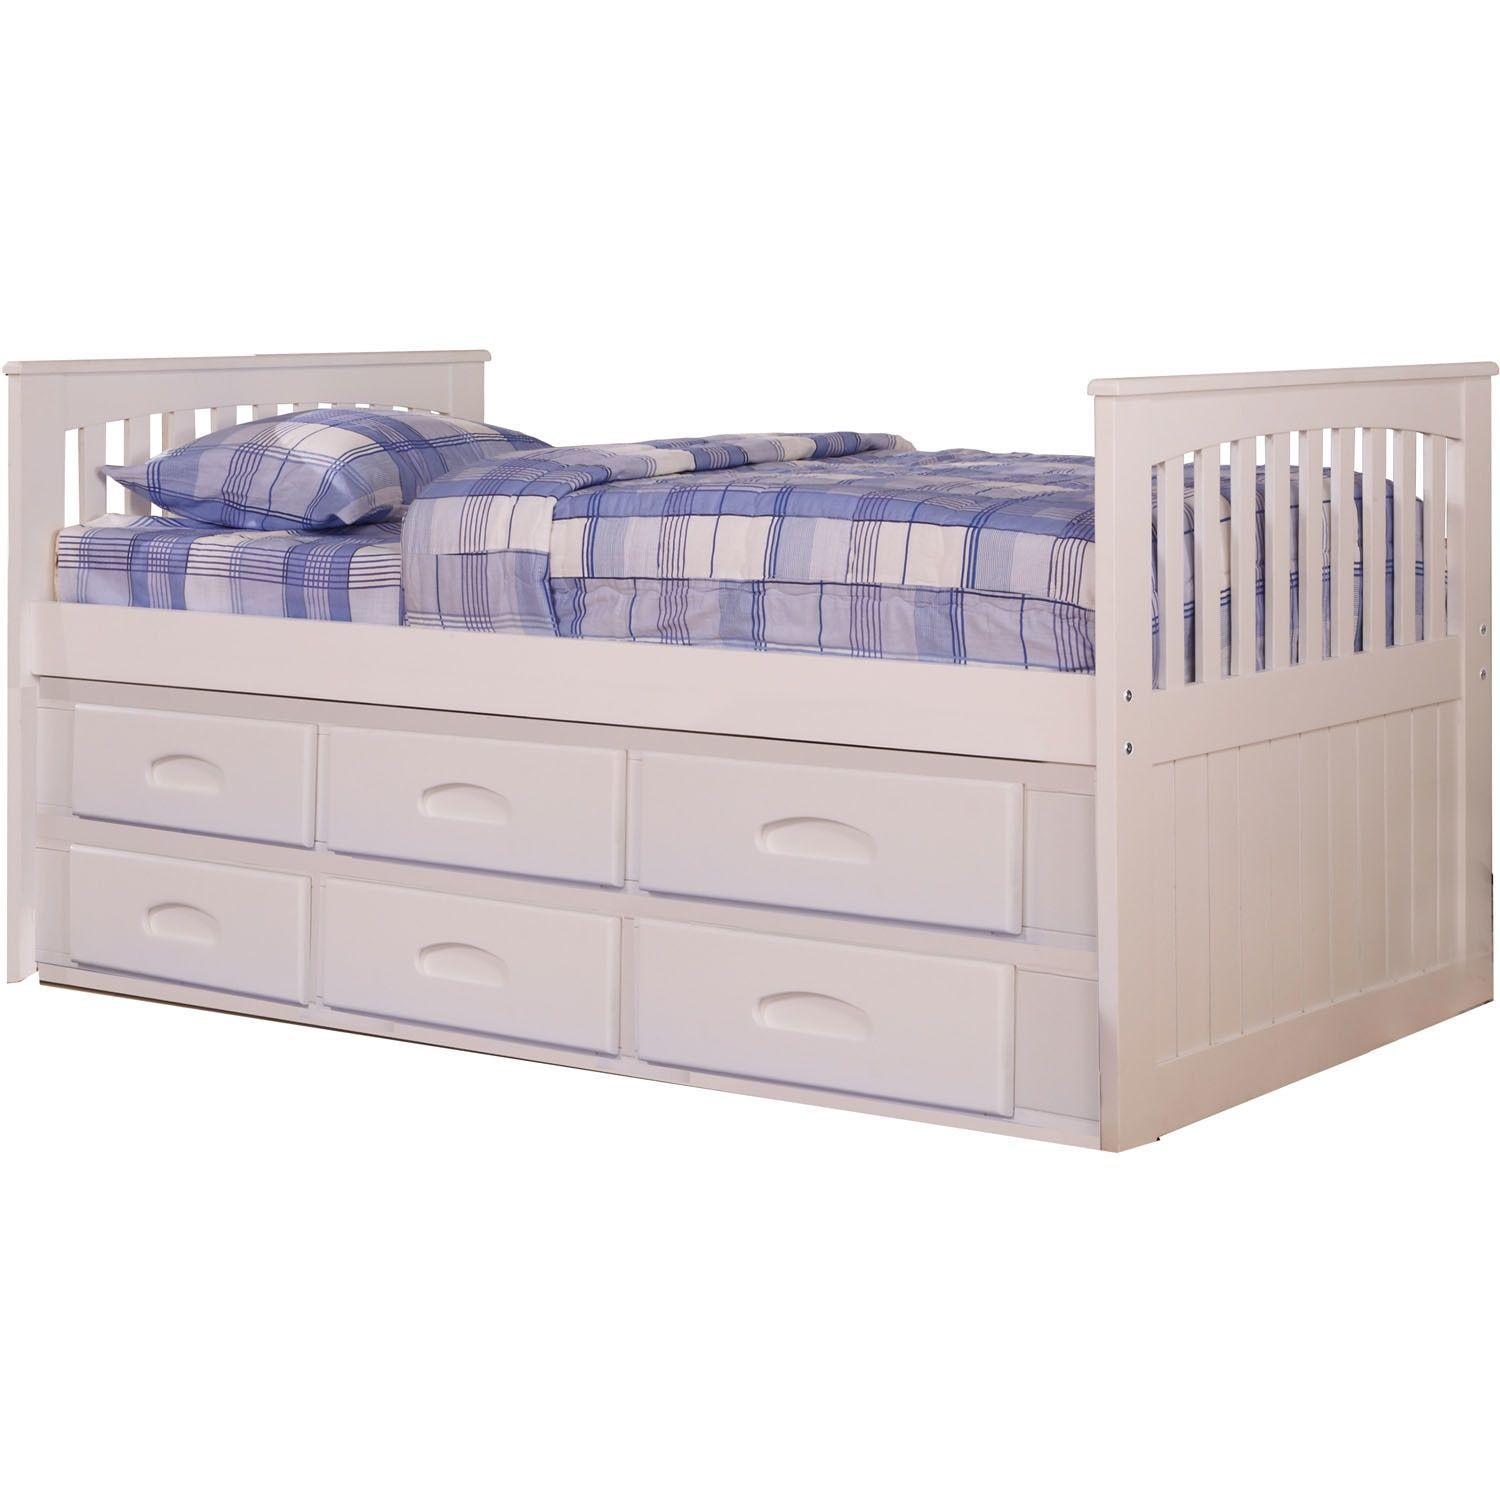 Cambridge Hillcrest White Twin Size Bed Frame With Build In Storage